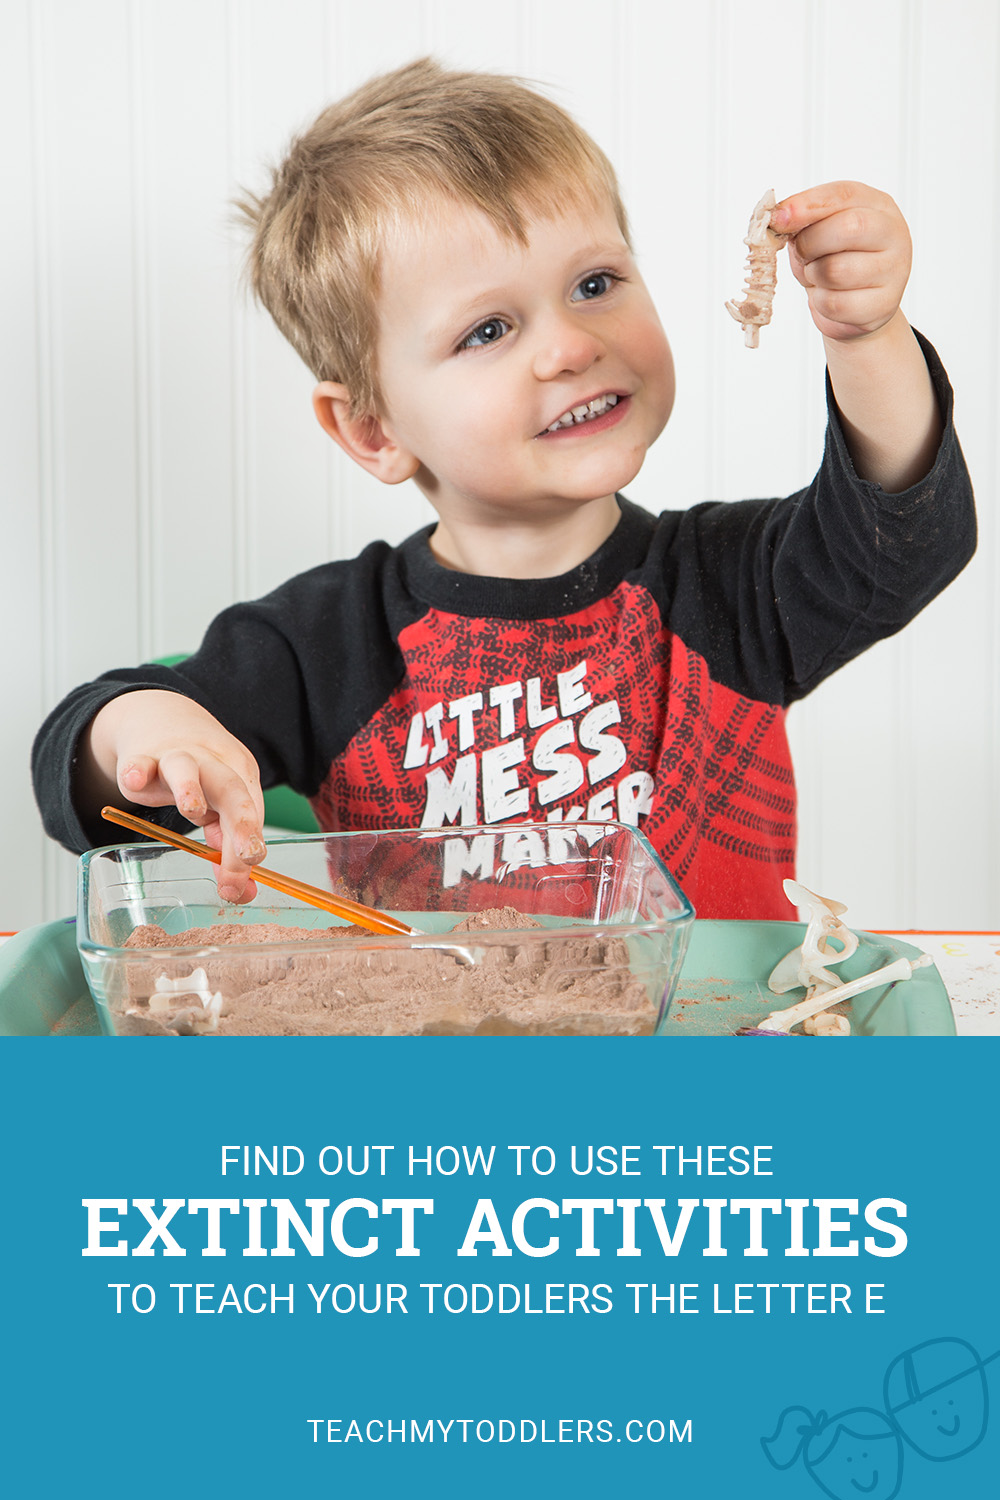 Find out how to use these e is for extinct activites to teach your toddlers the letter e